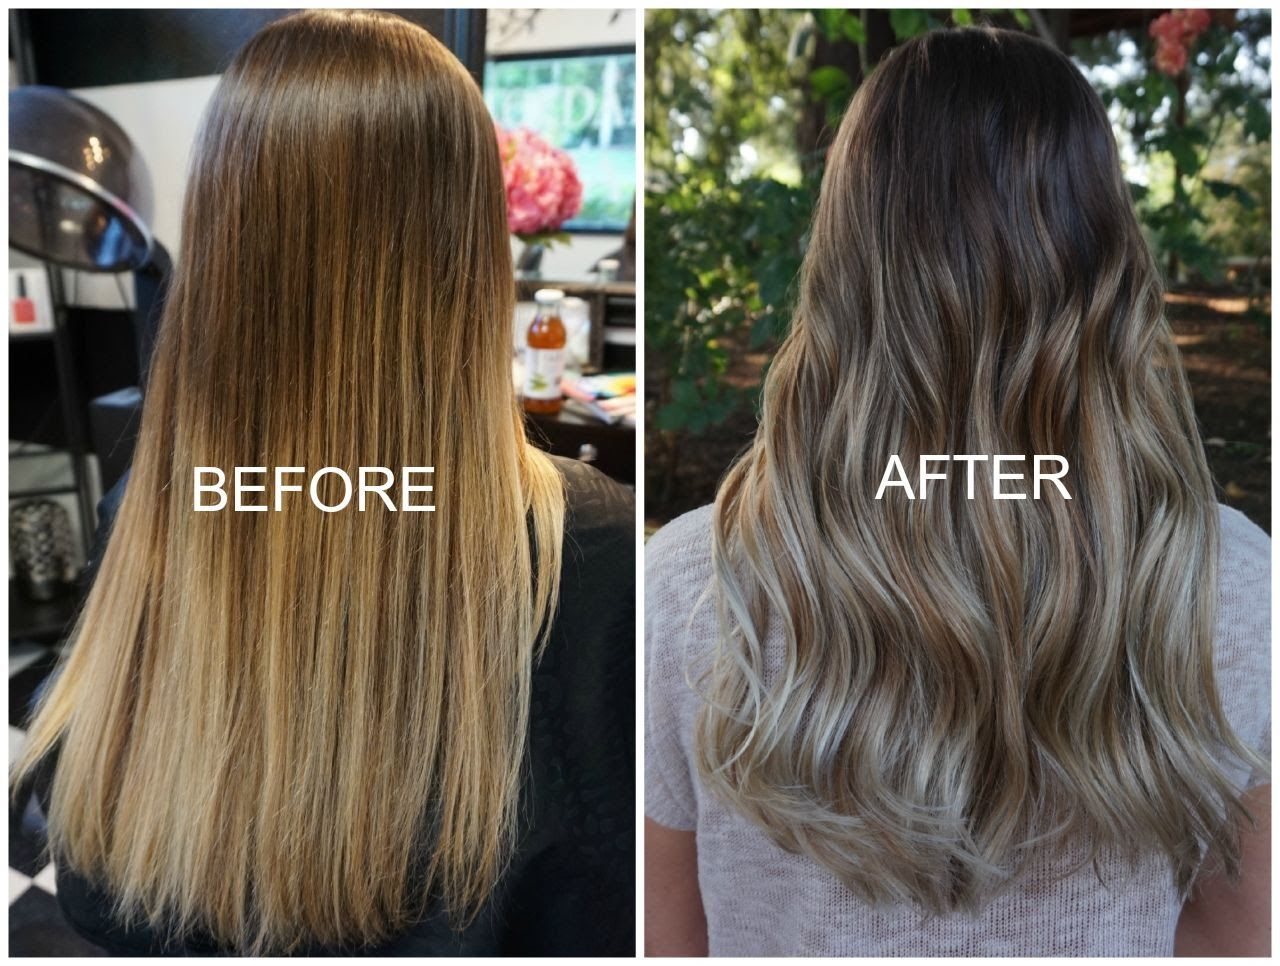 60 Hottest Balayage Hair color Ideas 2020 , balayage